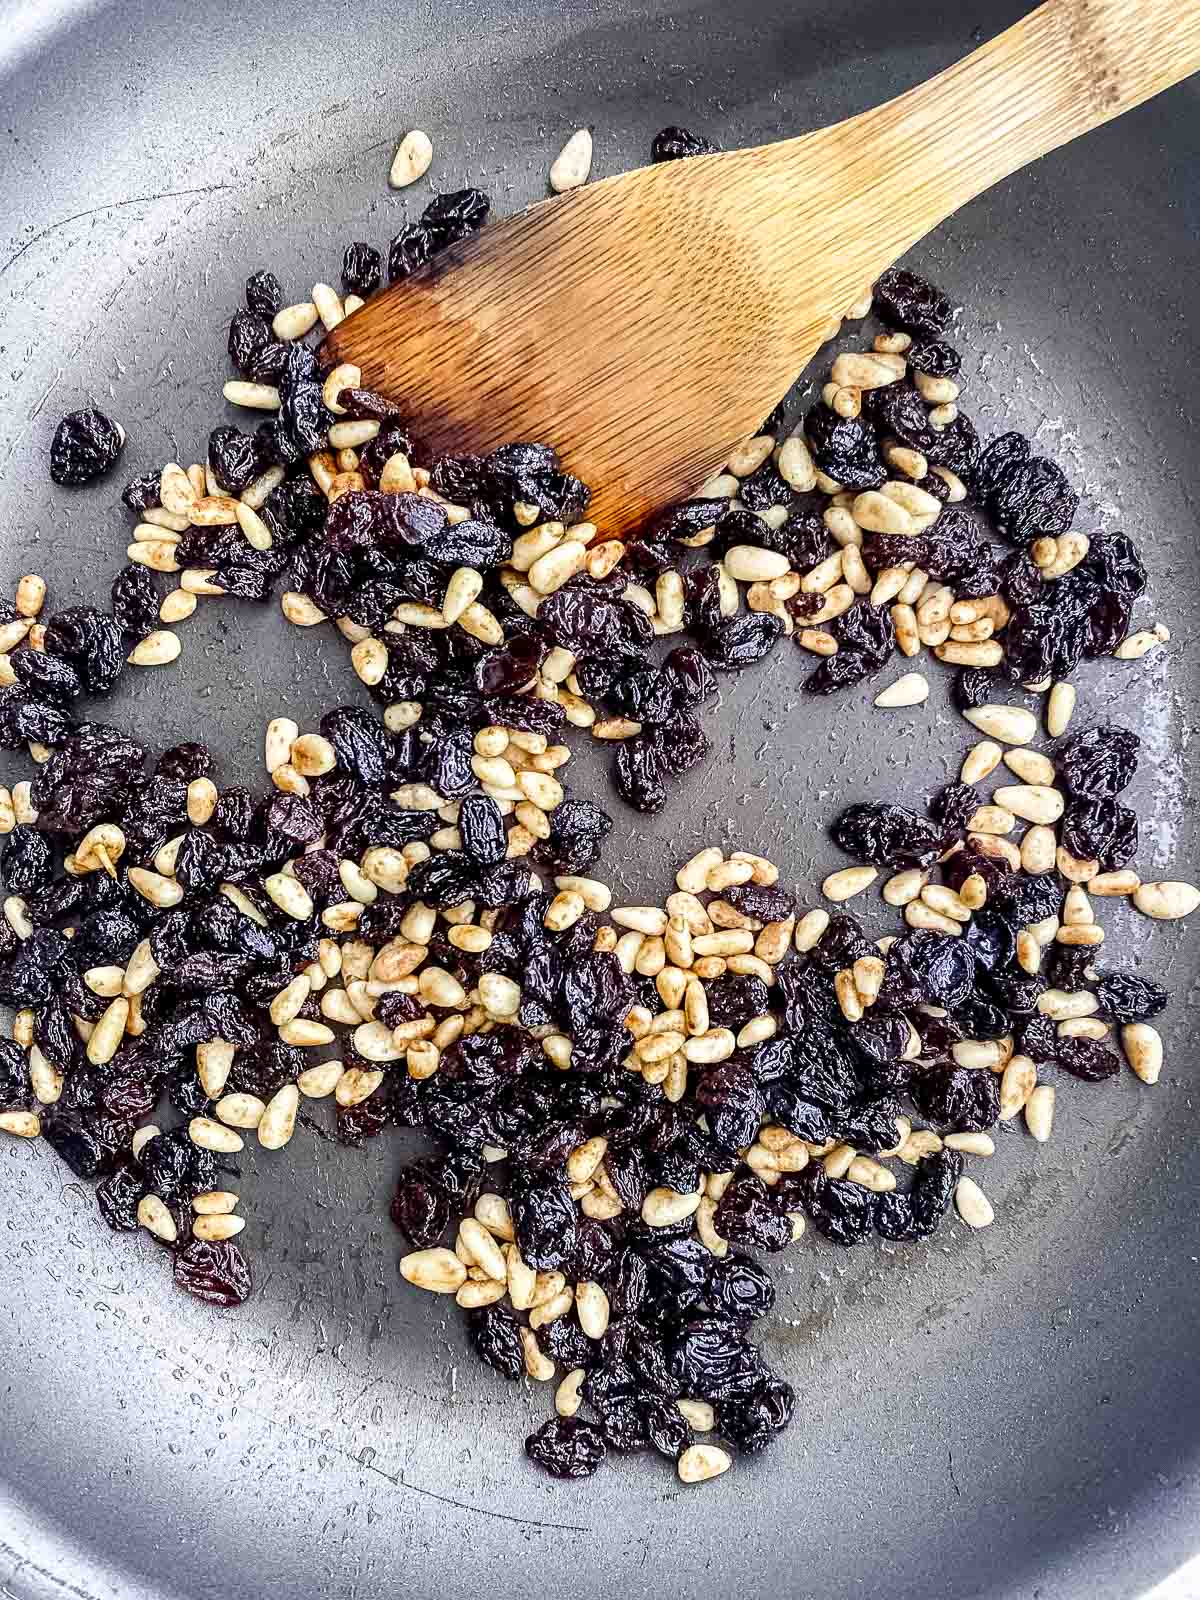 Sauteing pine nuts and raisins in olive oil in a nonstick pan